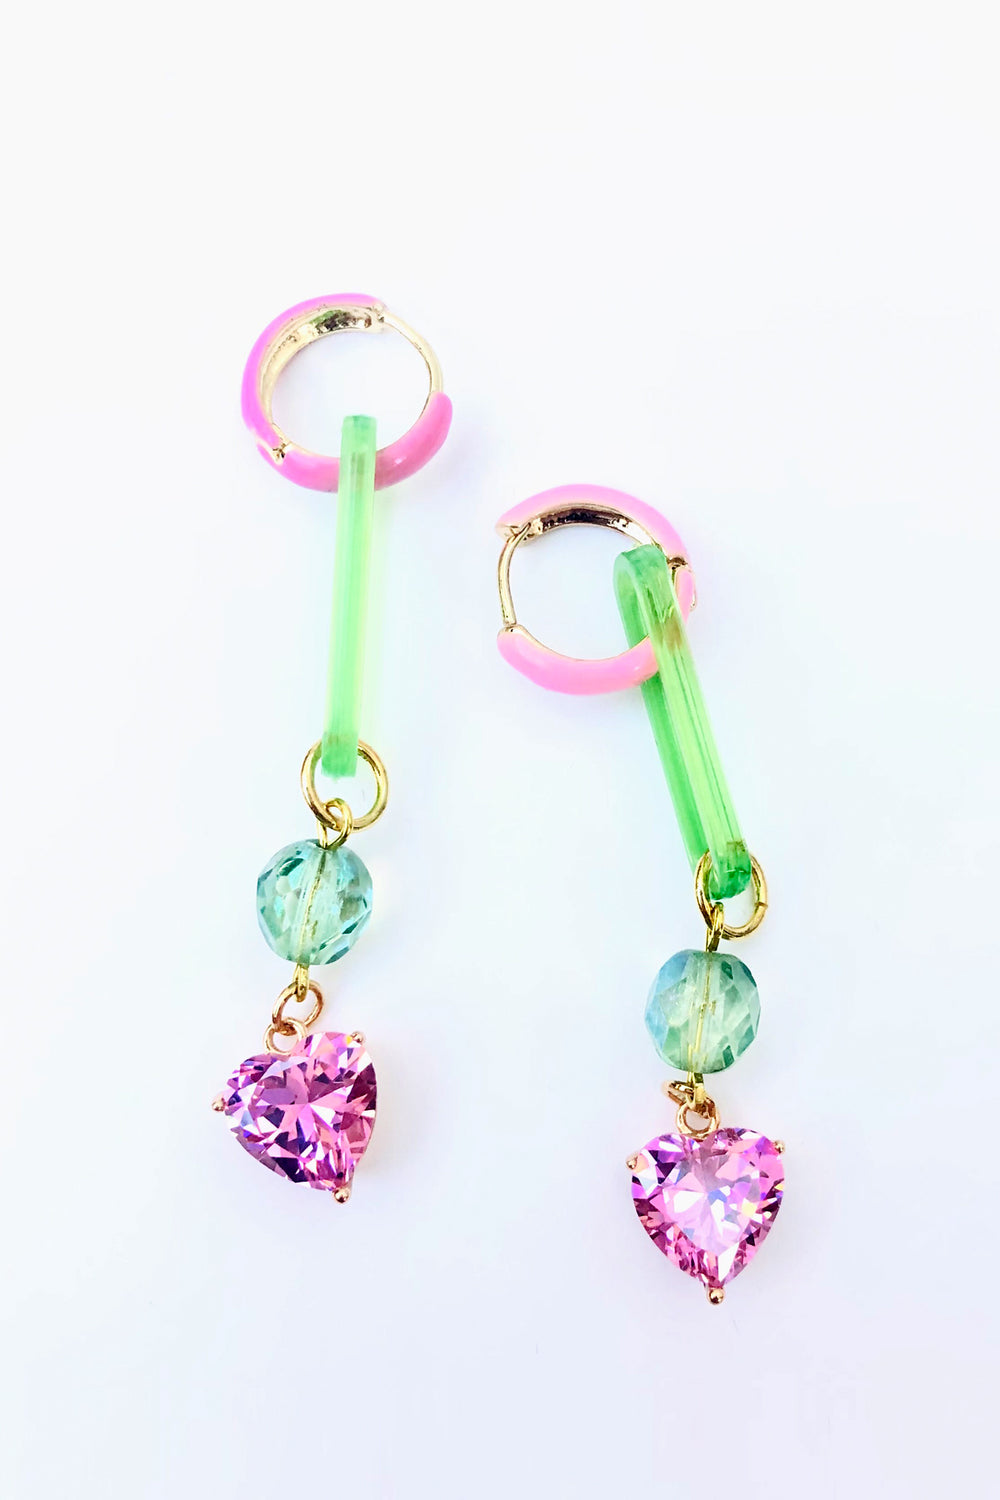 PINK HEART AND MINT GREEN P.L.U.R. EARRINGS